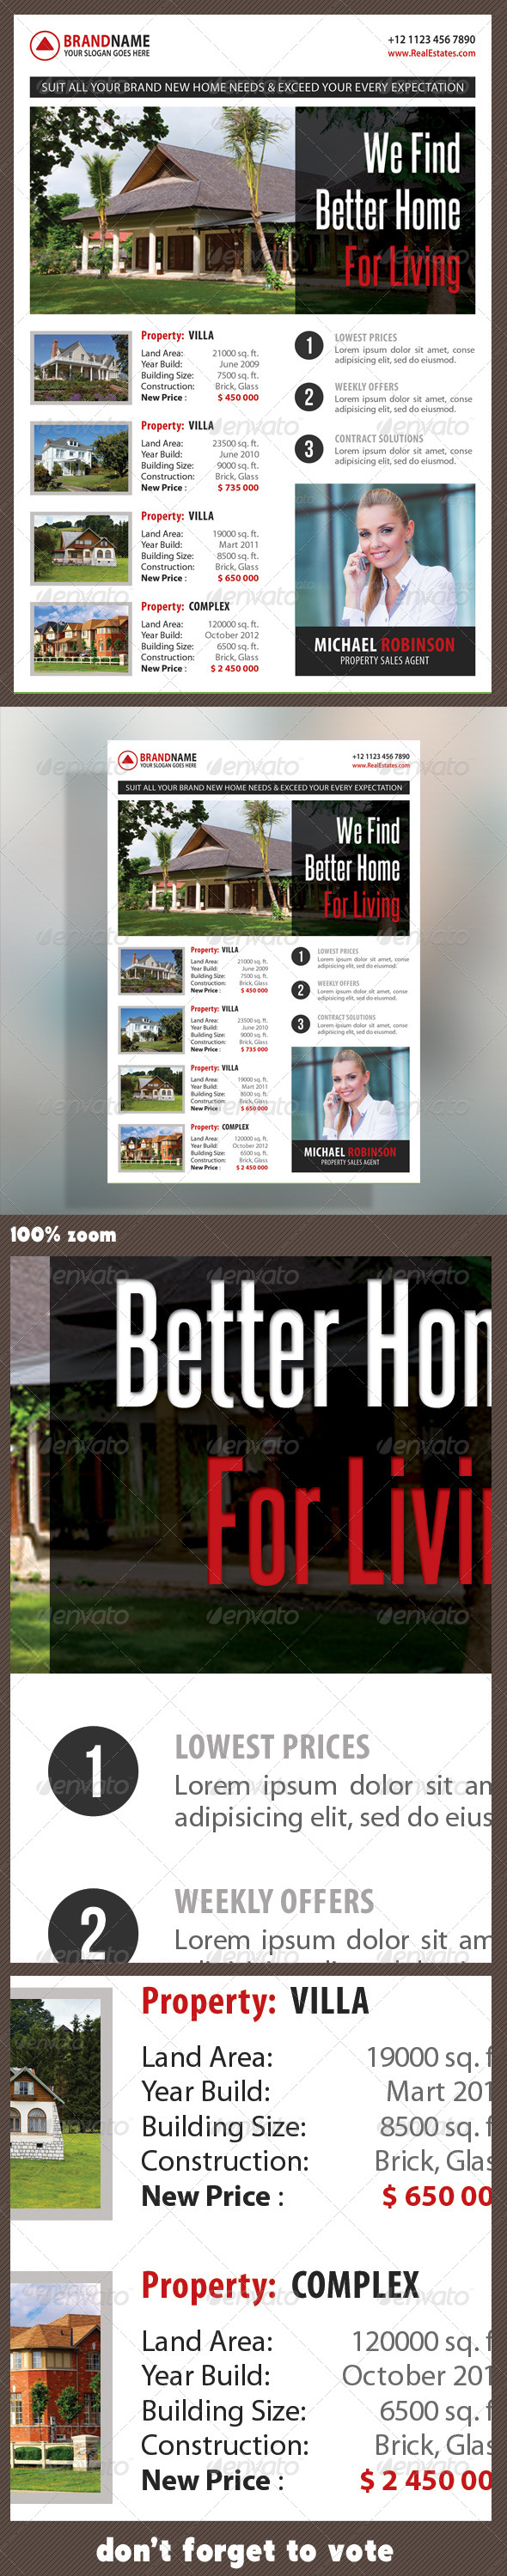 Real Estate Corporate Flyer 04 - Commerce Flyers